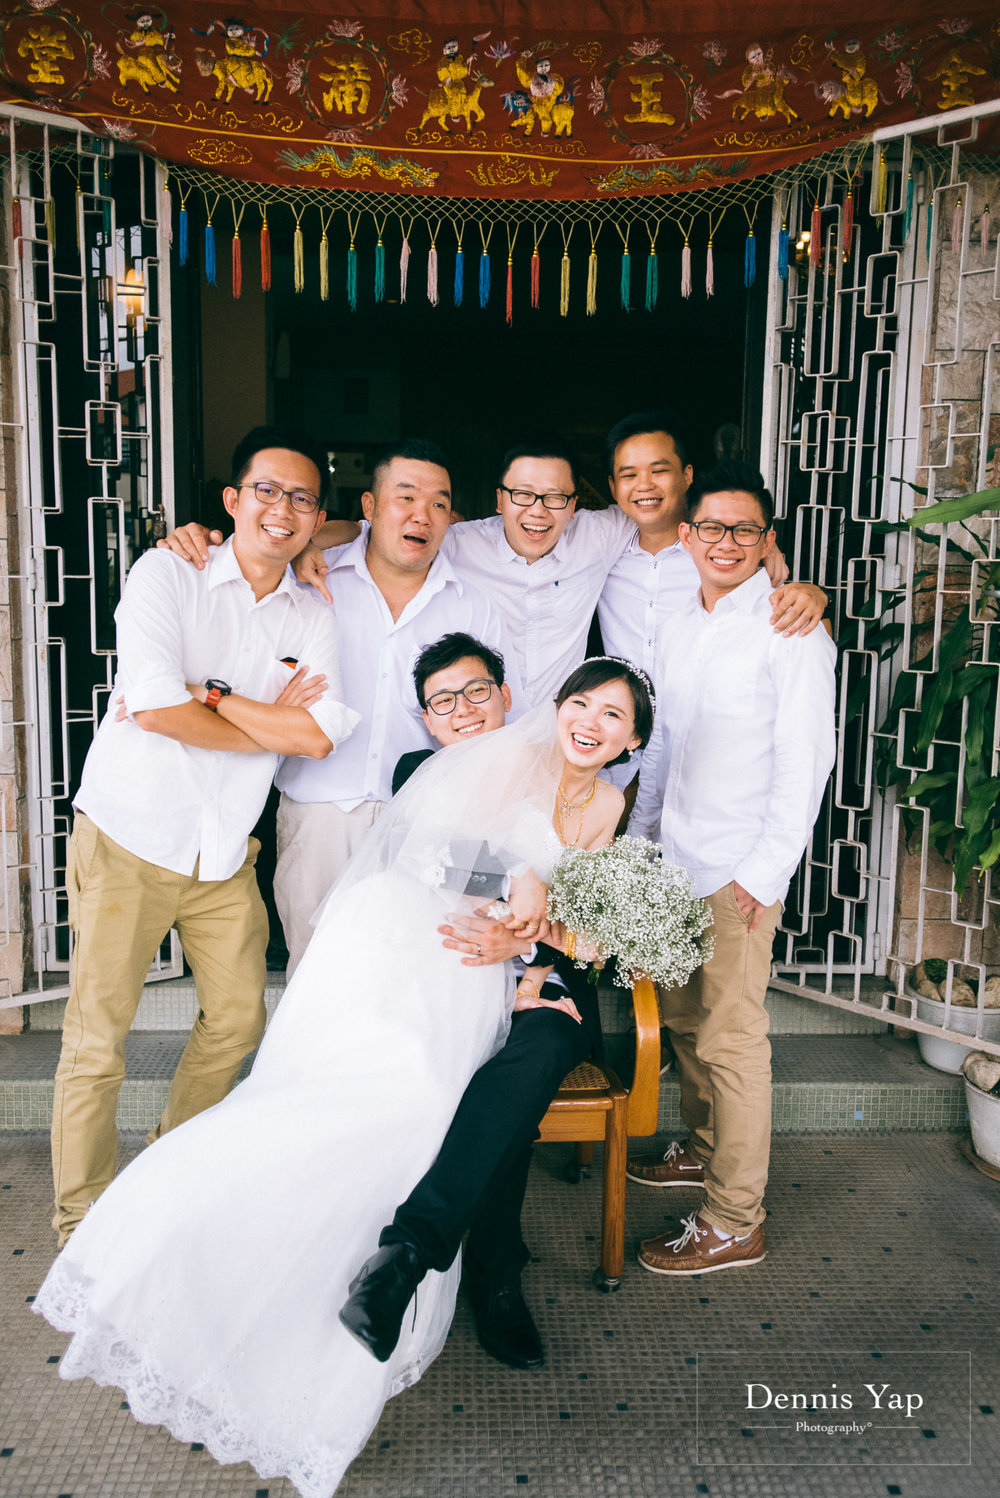 muy lip lee ting wedding day ipoh dennis yap photography -15.jpg